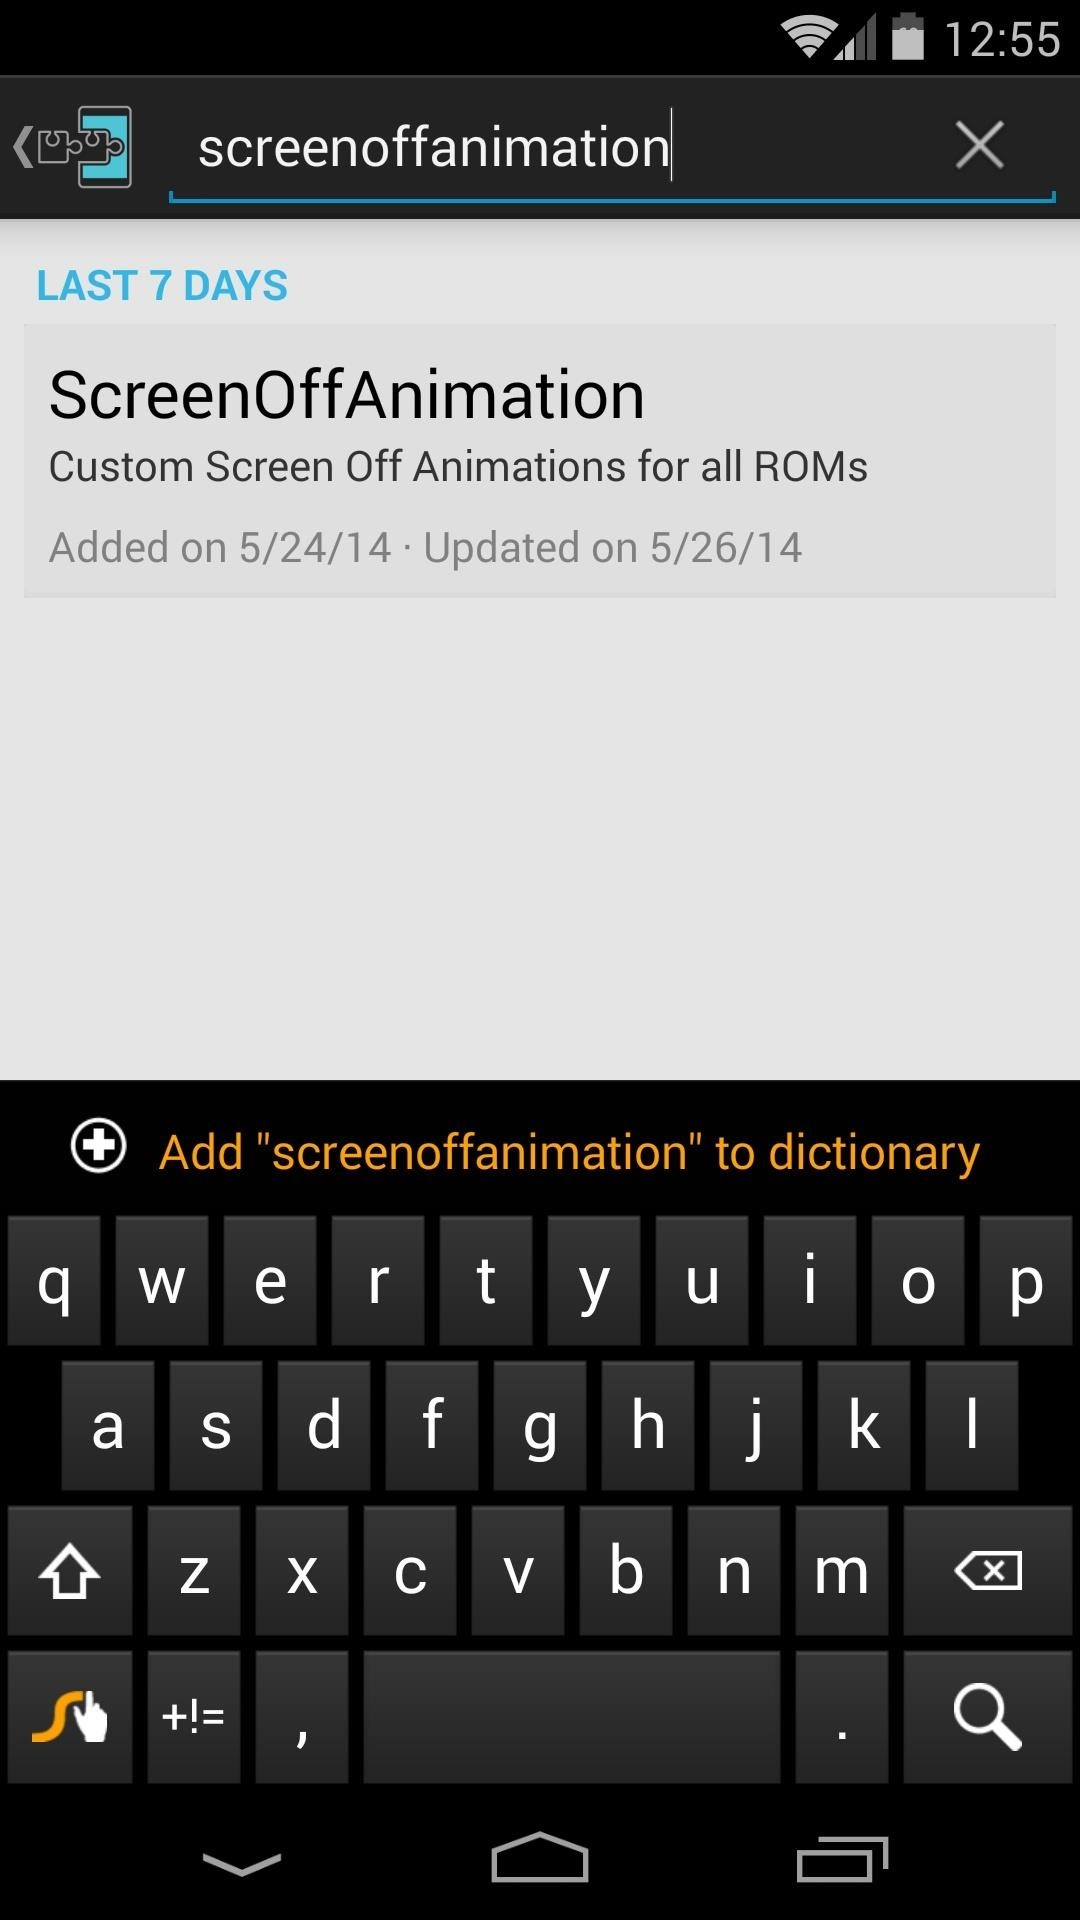 How to Get Custom Screen-Off Effects for Your Nexus 5 or Other Android Device